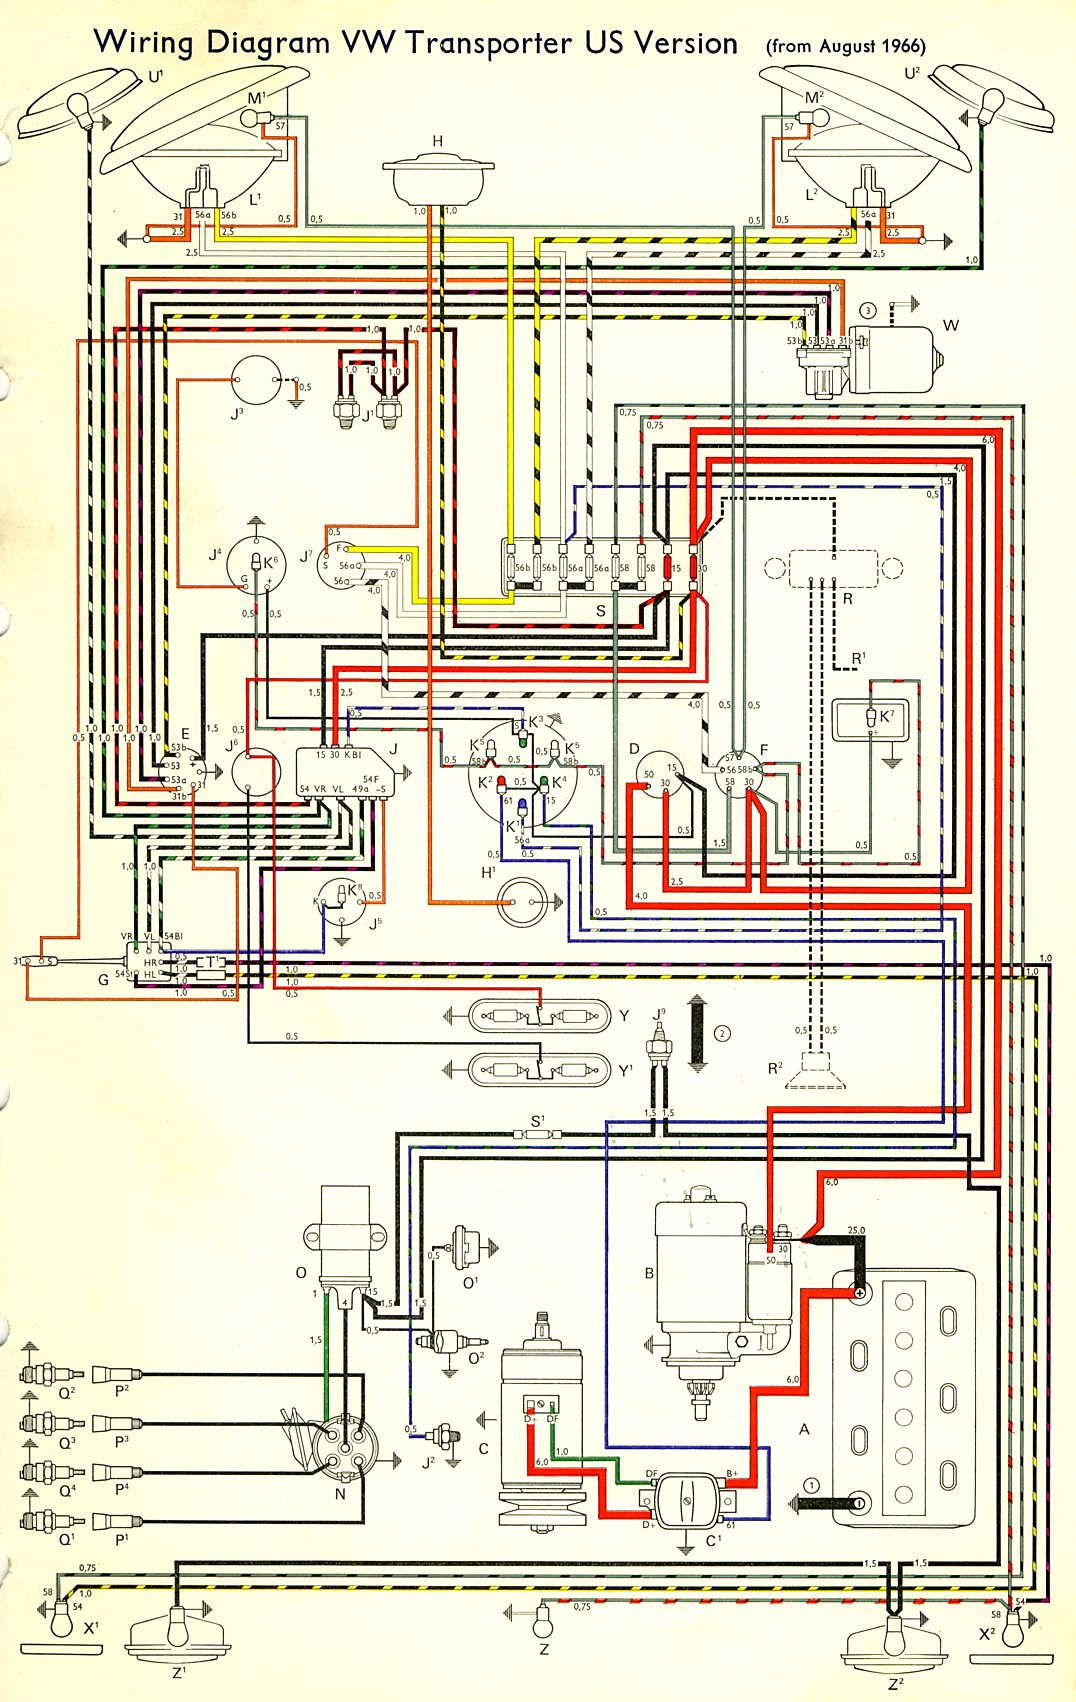 bus_67_USA 28 [ vw bus wiring diagram ] 1977 vw bus wiring diagram 1976 vw 1978 vw wiring diagram at n-0.co